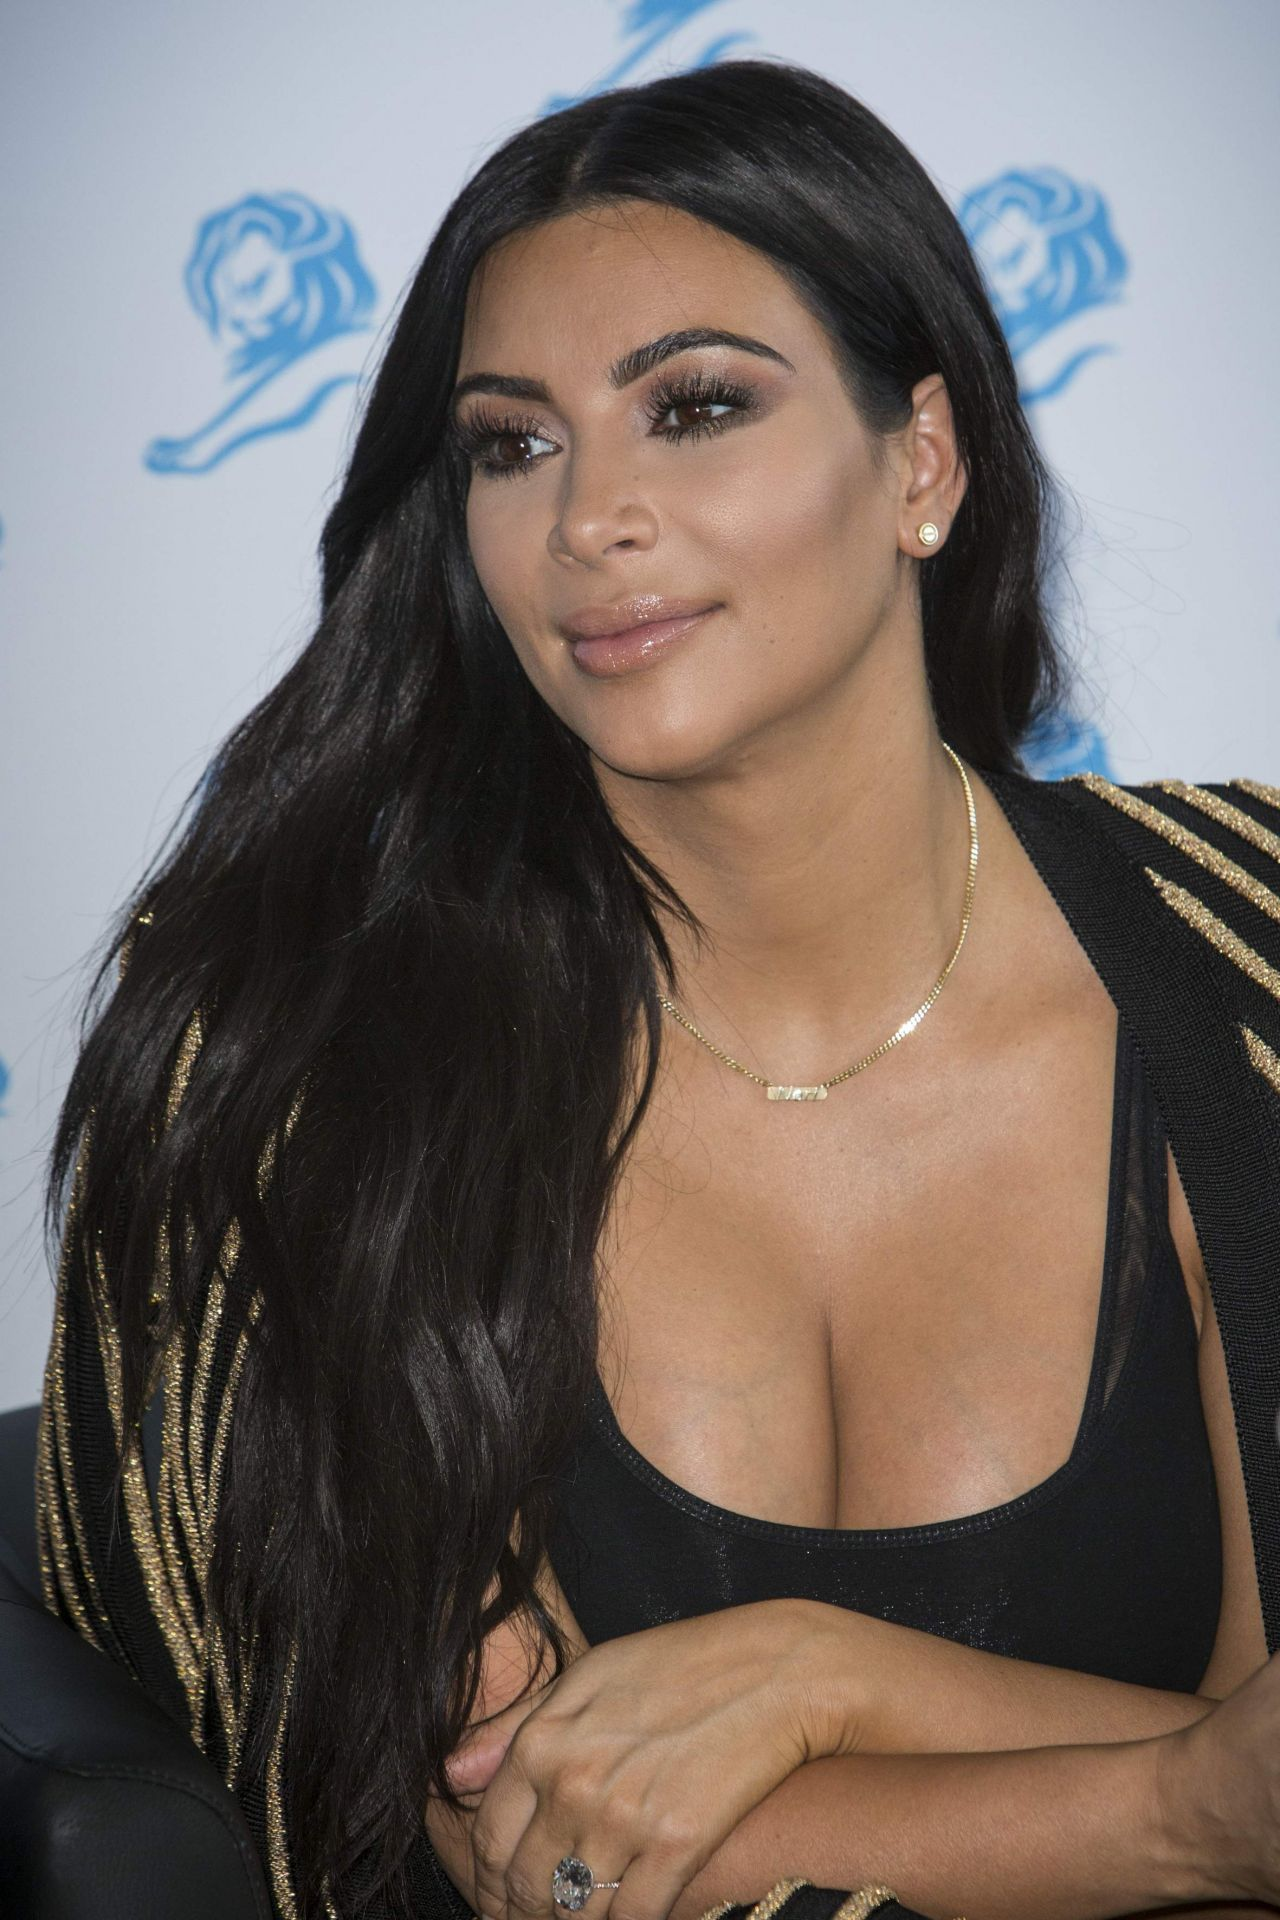 Kim Kardashian Cannes Lions 2015 Event In Cannes